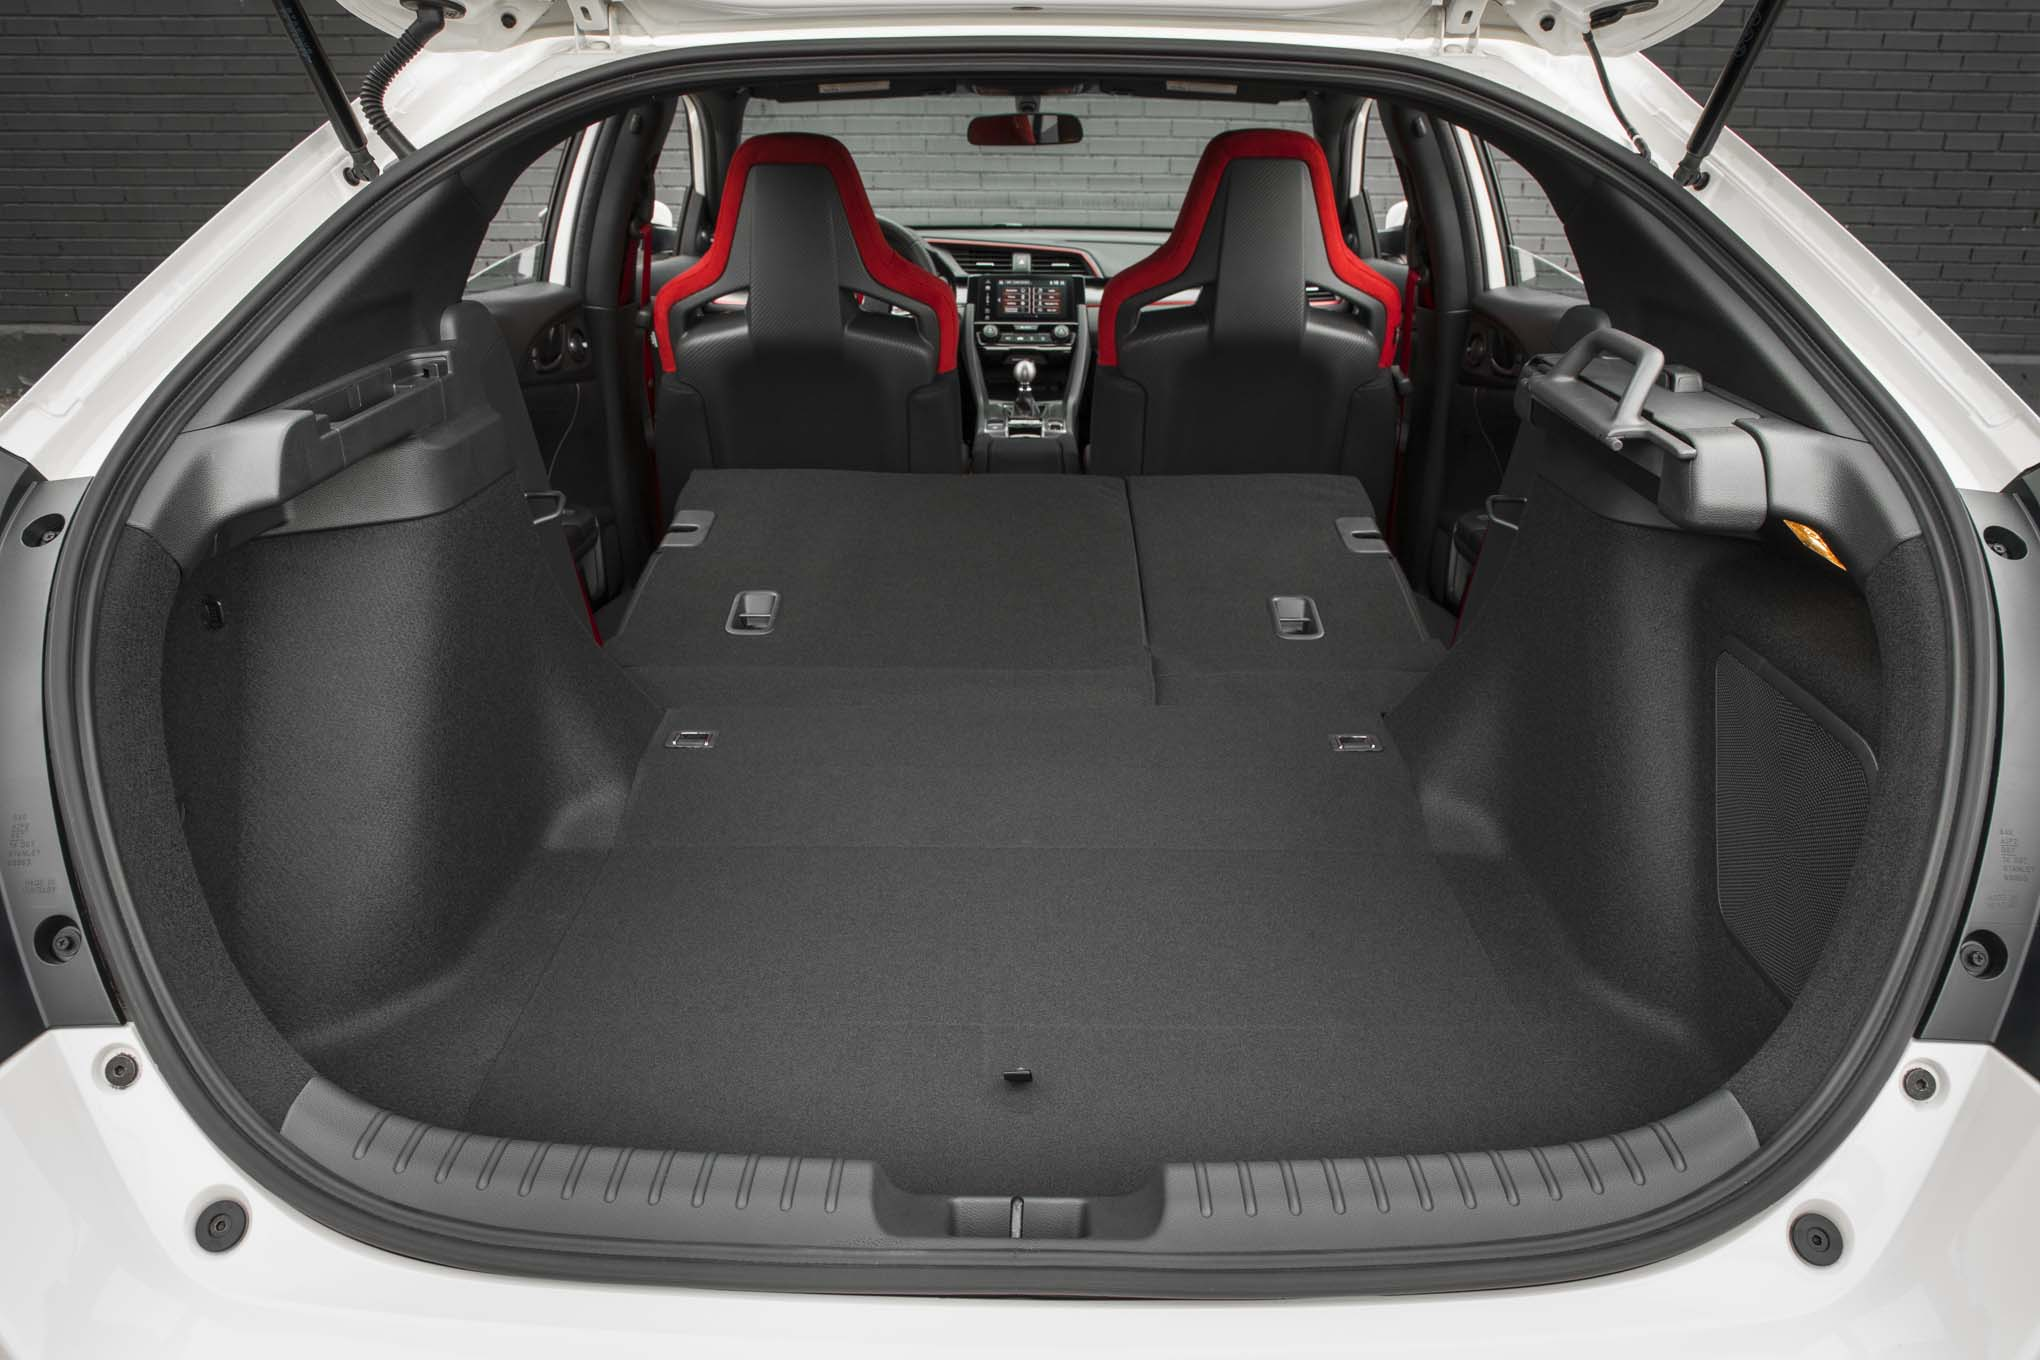 2017 honda civic type r first drive automobile magazine for Honda civic trunk